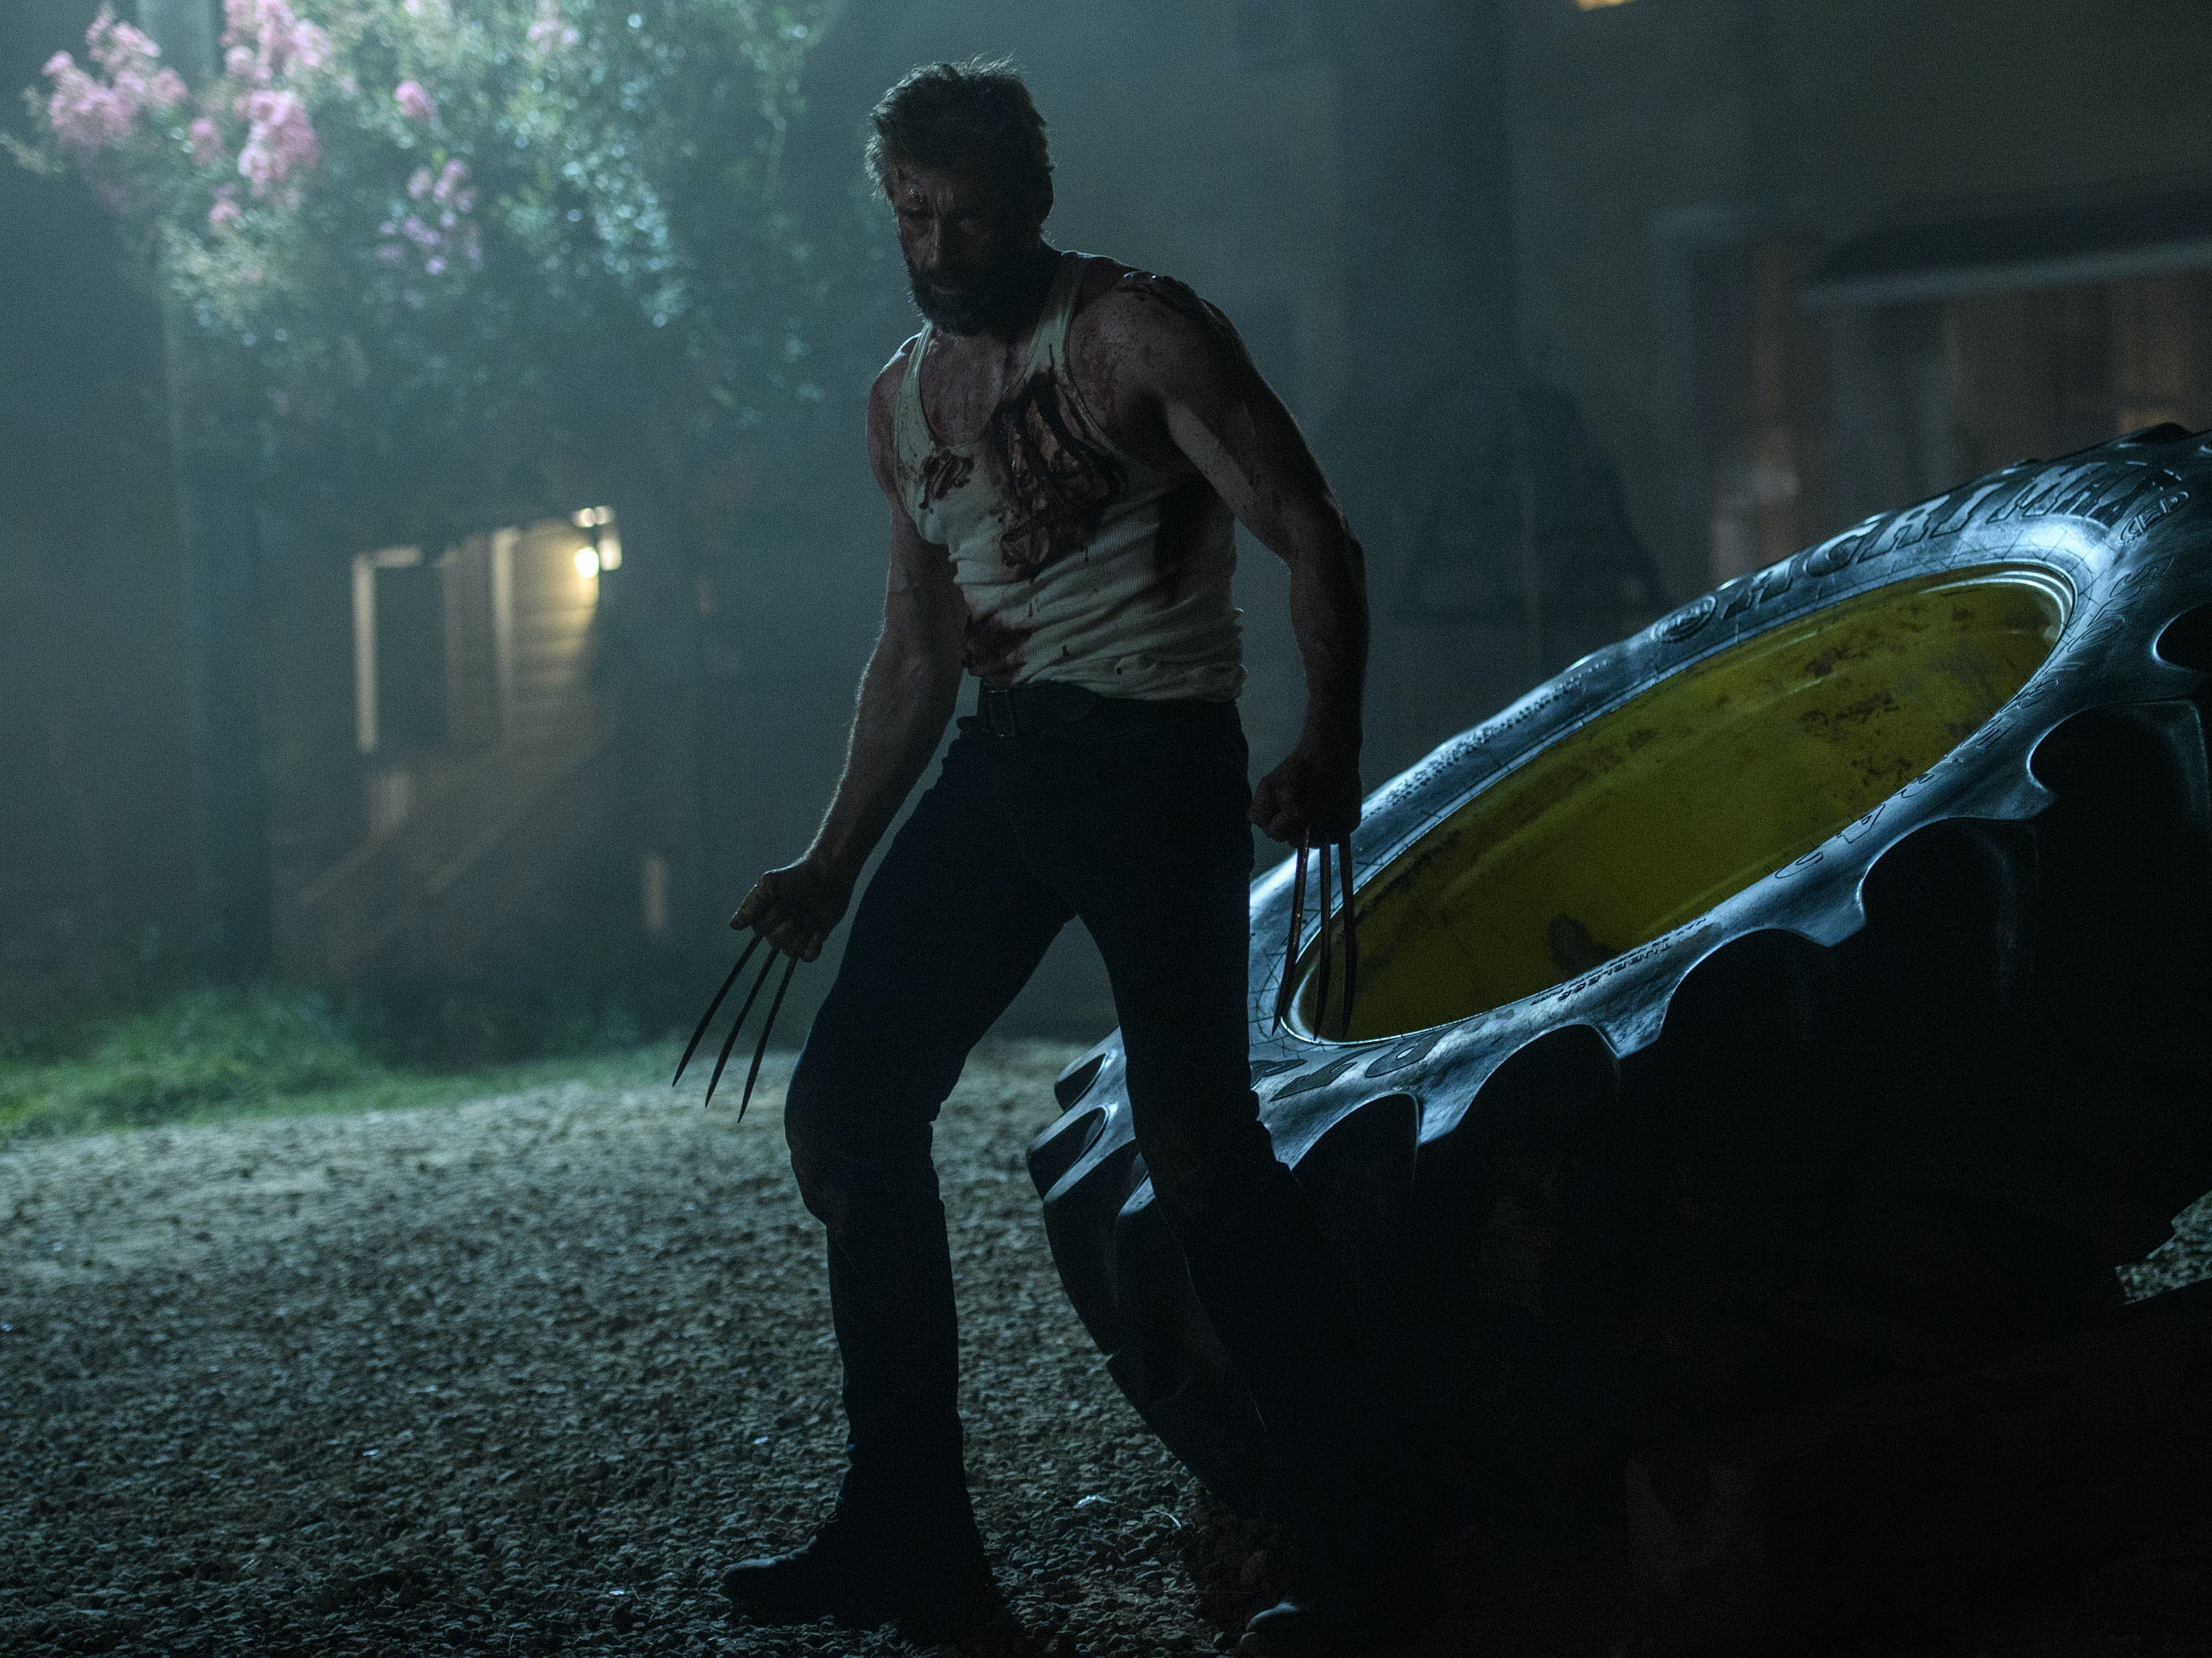 Hugh Jackman Swears He'll Never, Ever Play Wolverine Again